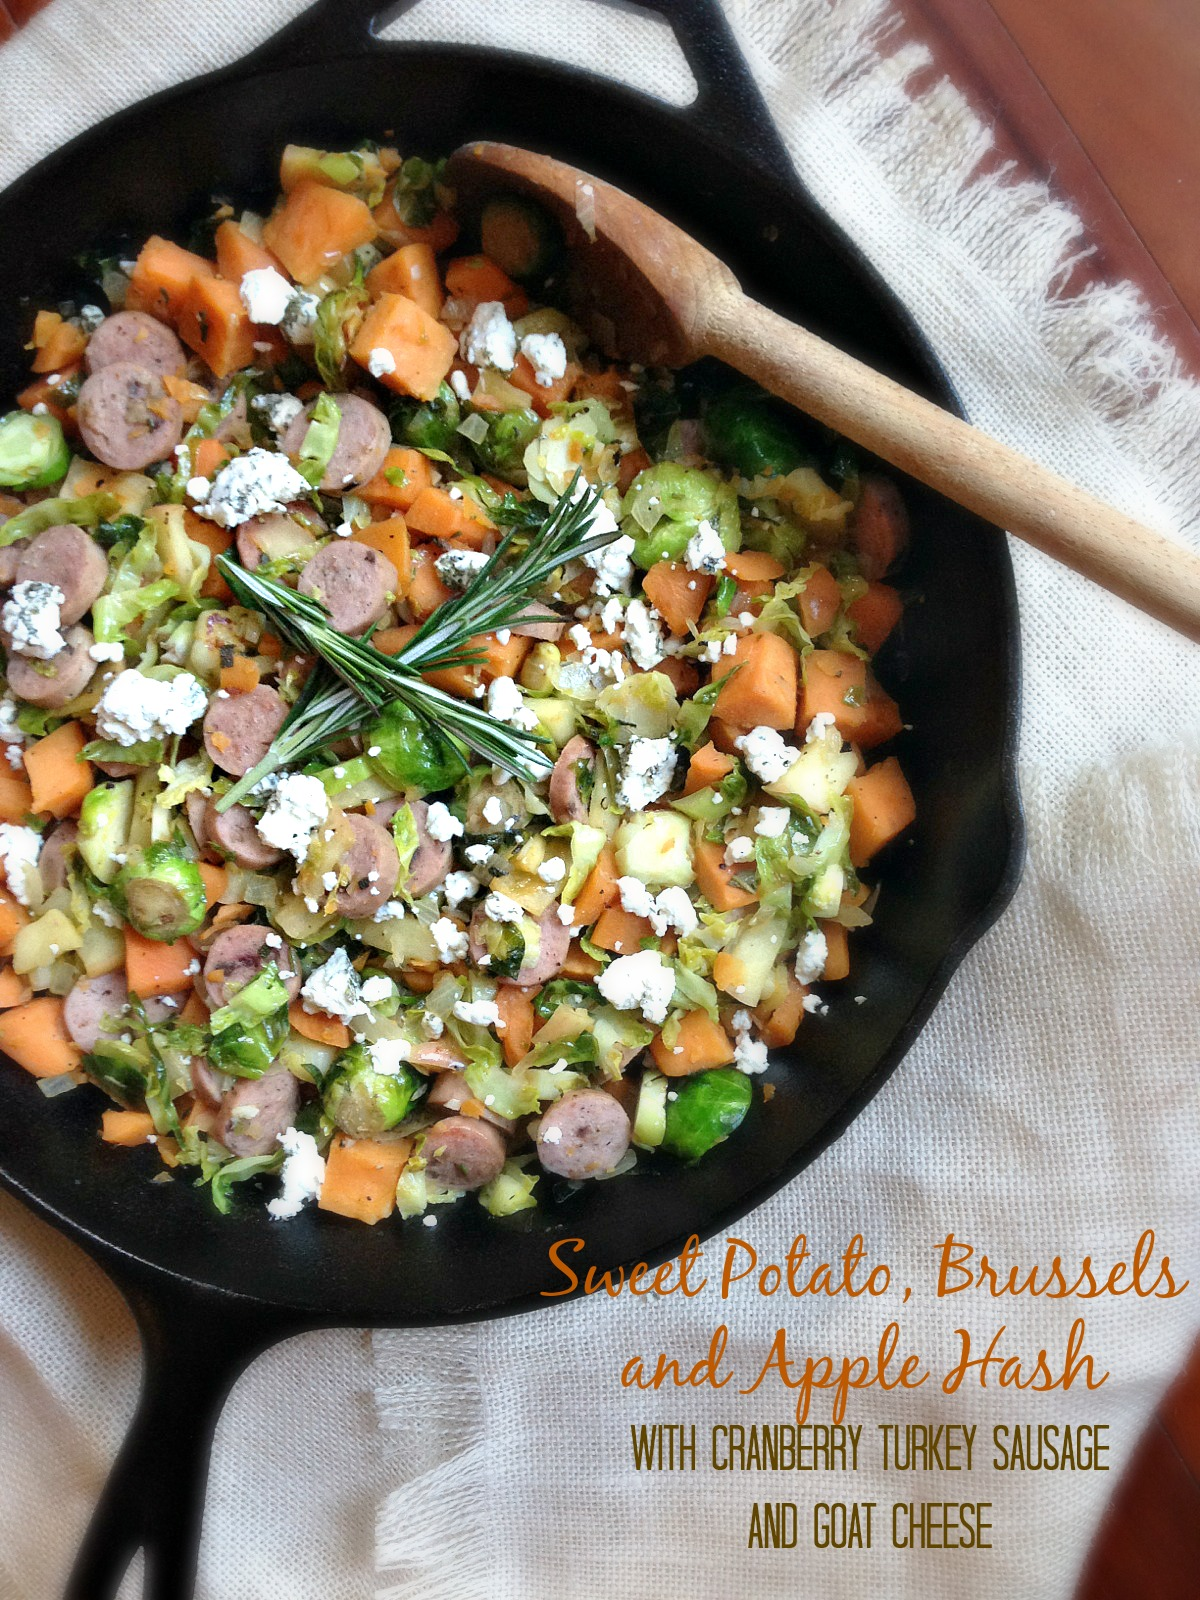 Sweet Potato, Brussels and Apple Hash with Cranberry Turkey Sausage and Goat Cheese